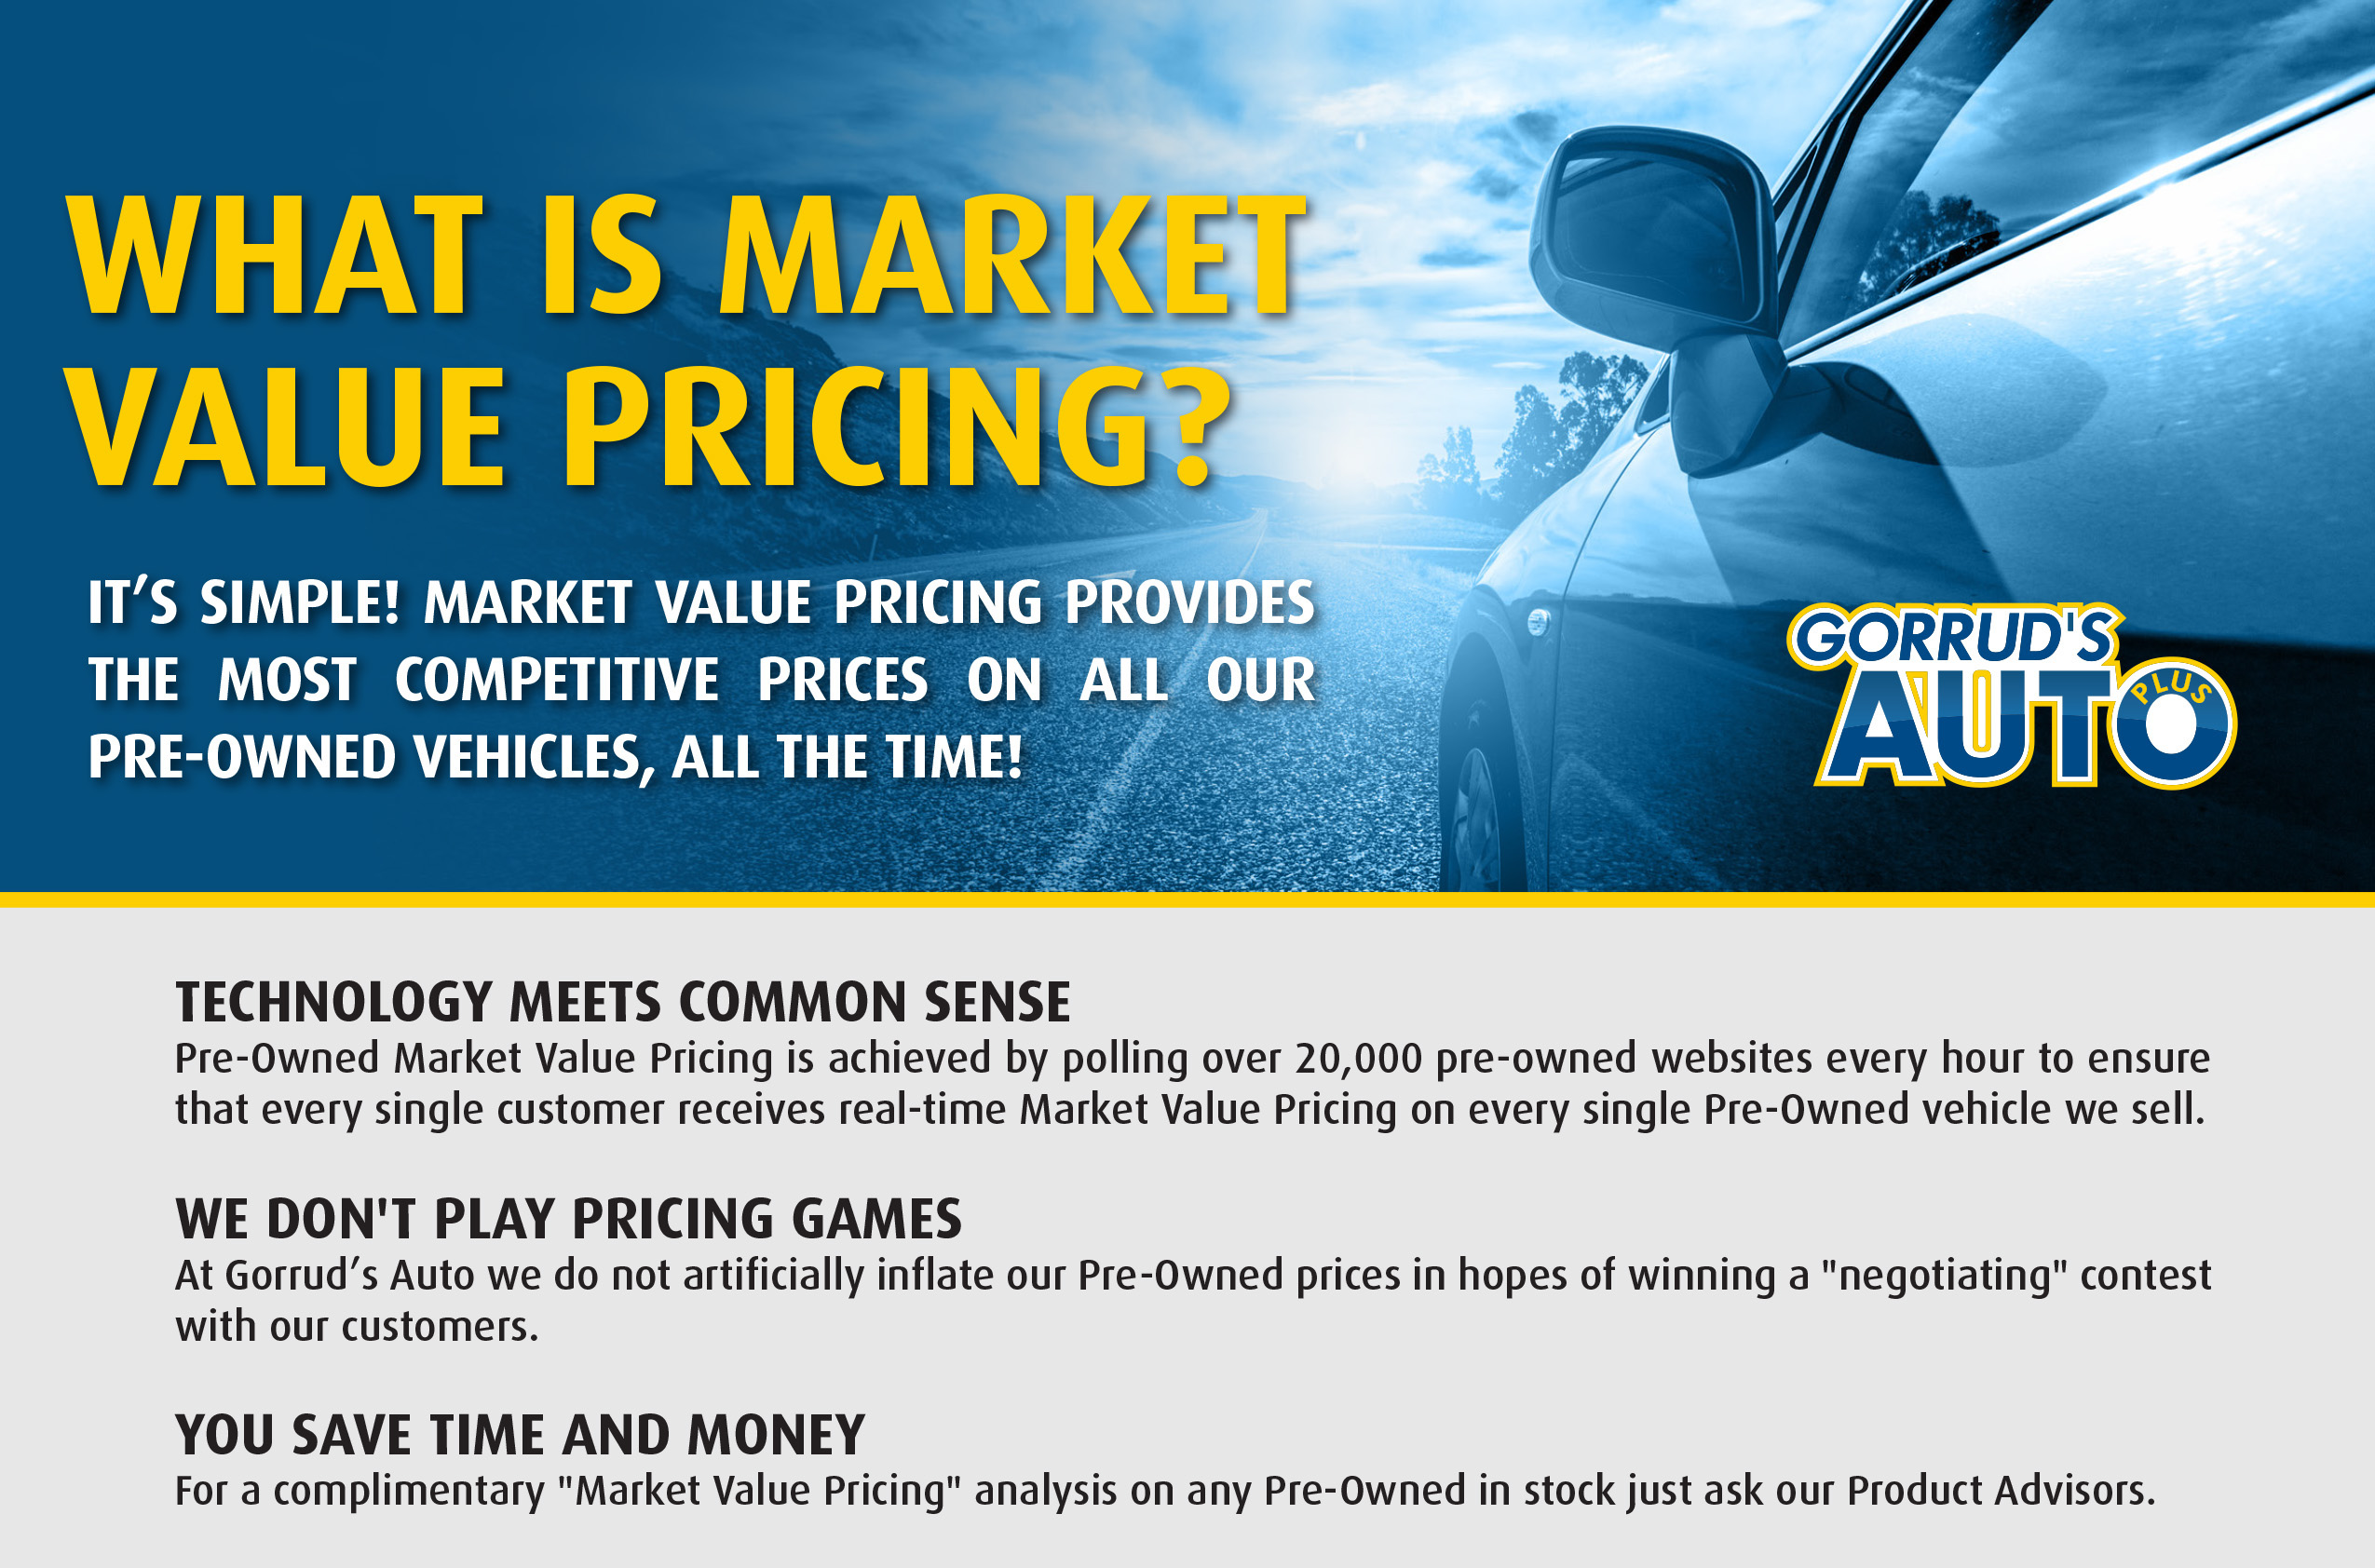 our market value pricing philosophy means you receive a no haggle no hassle purchase experience and provides you with peace of mind knowing you are